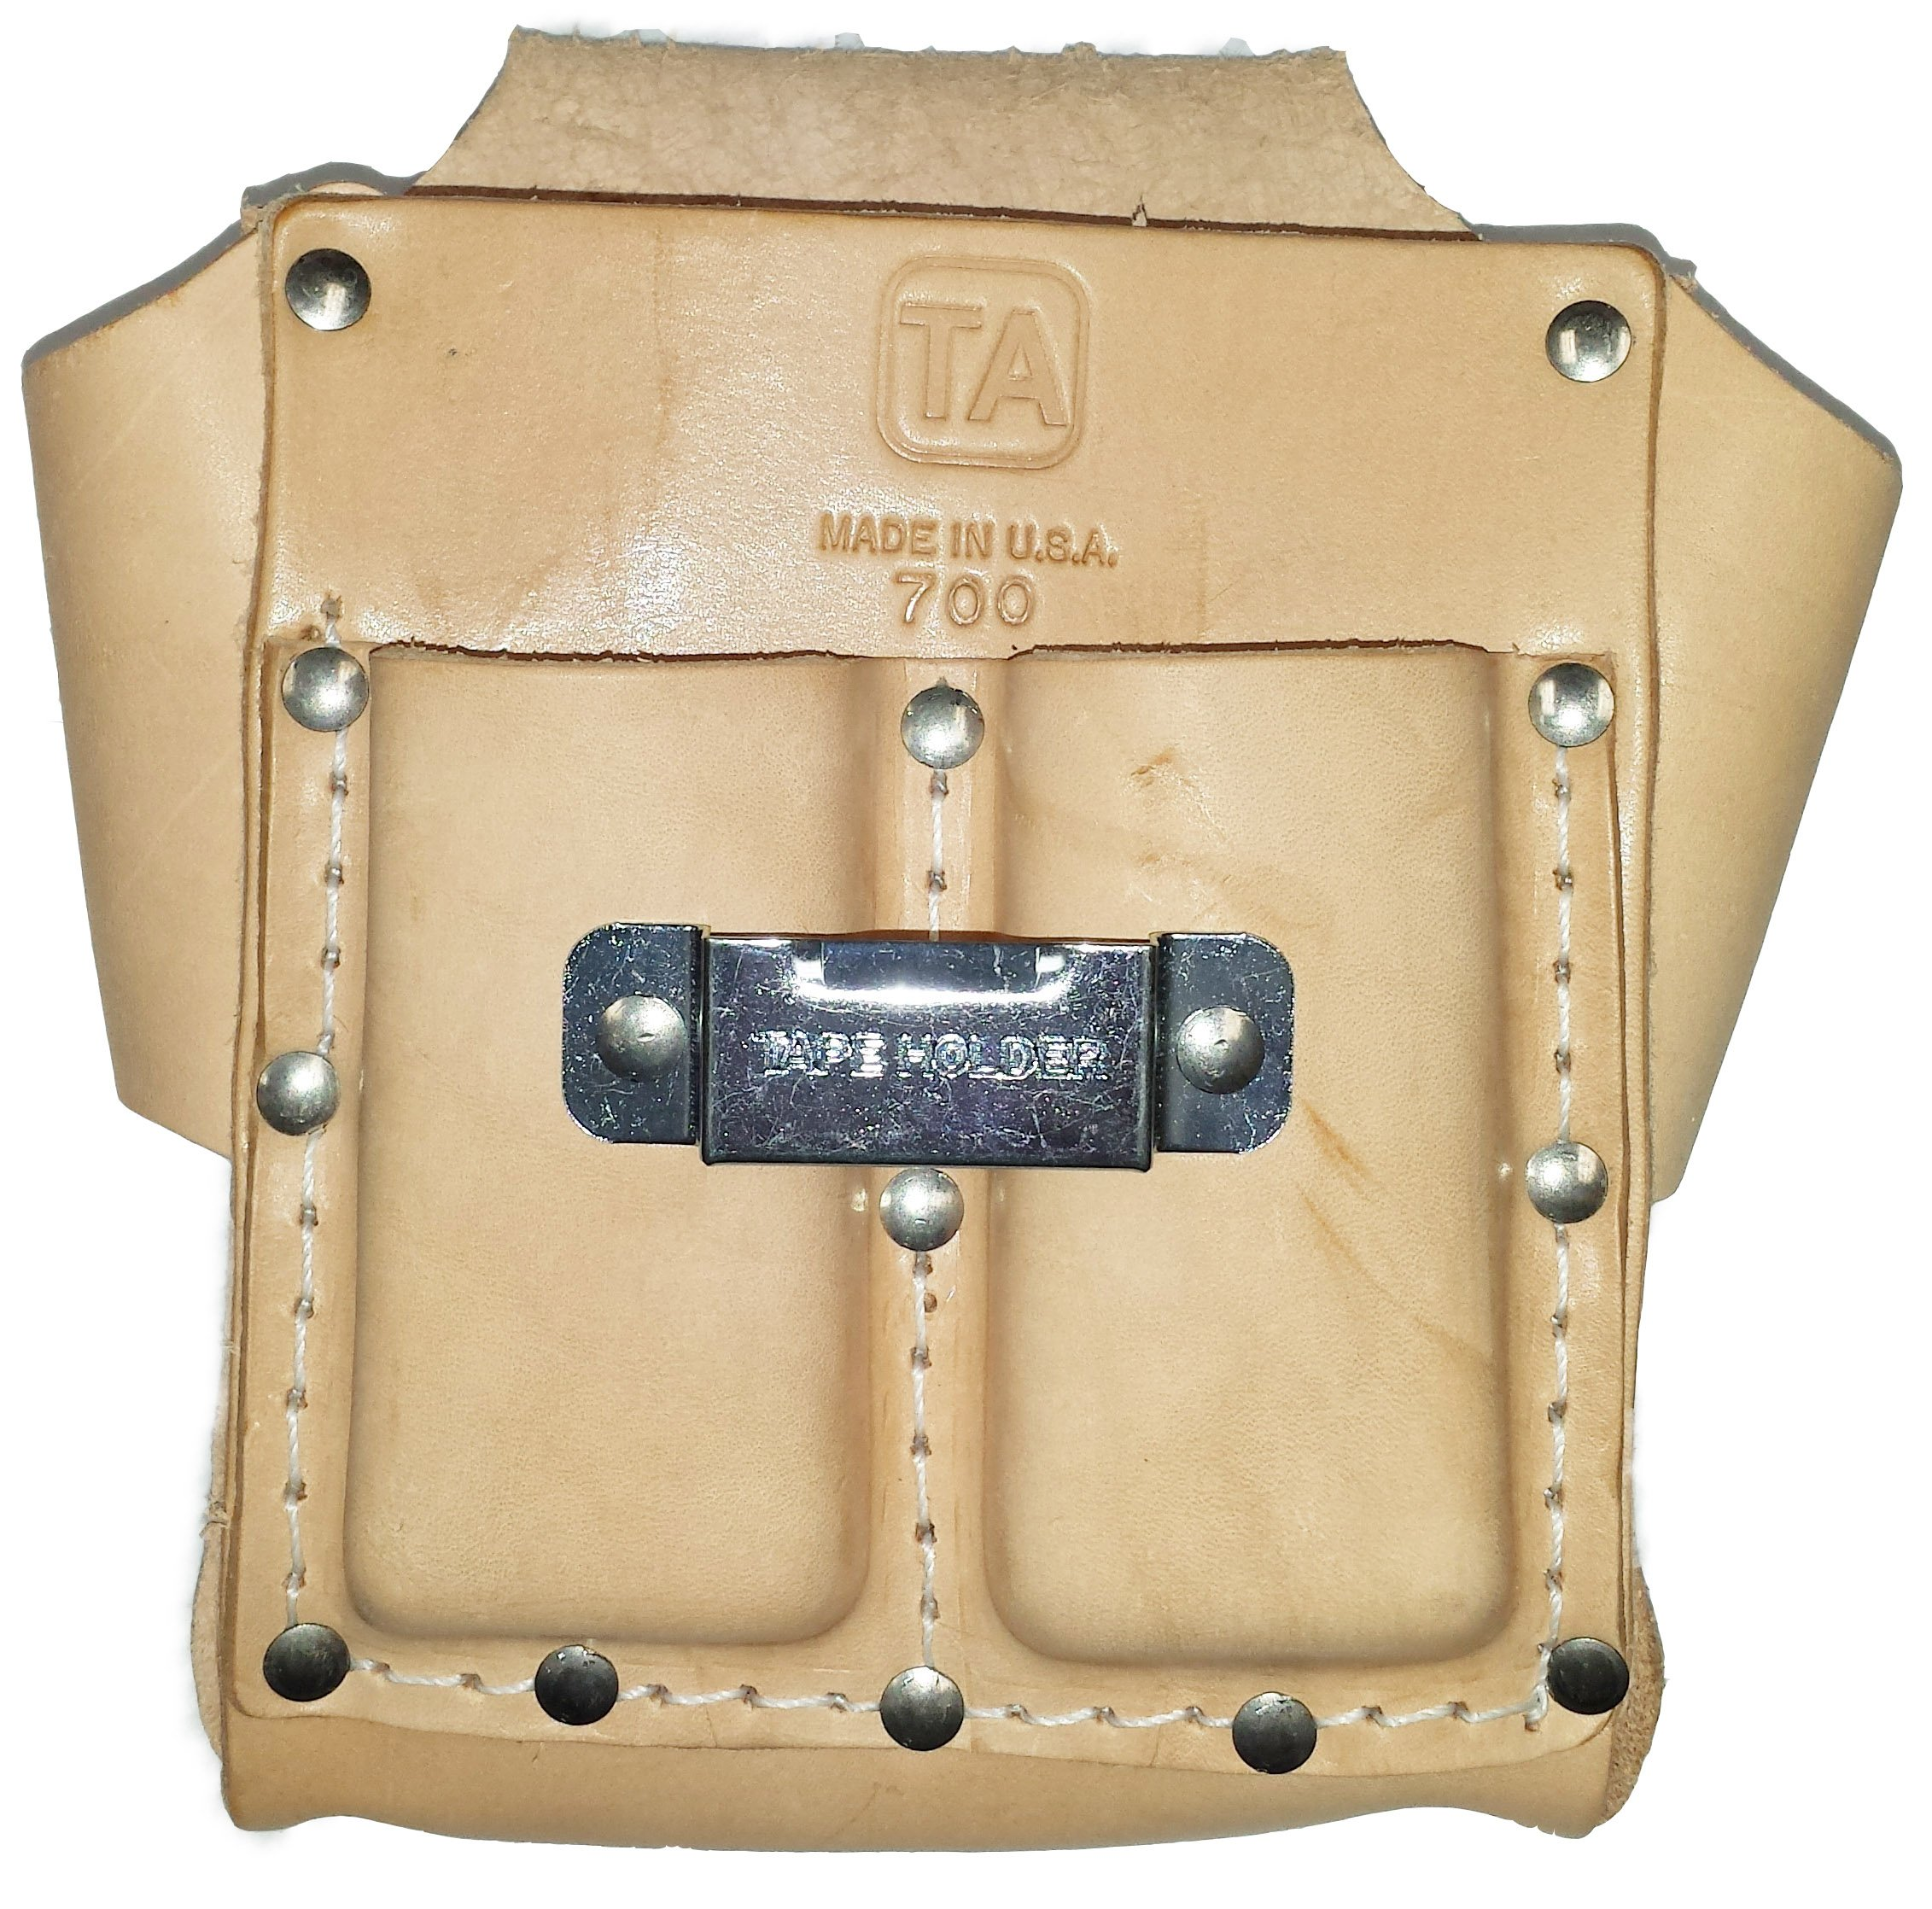 TA700, 3-Pocket Box-Shape Tool Pouch, Made in USA